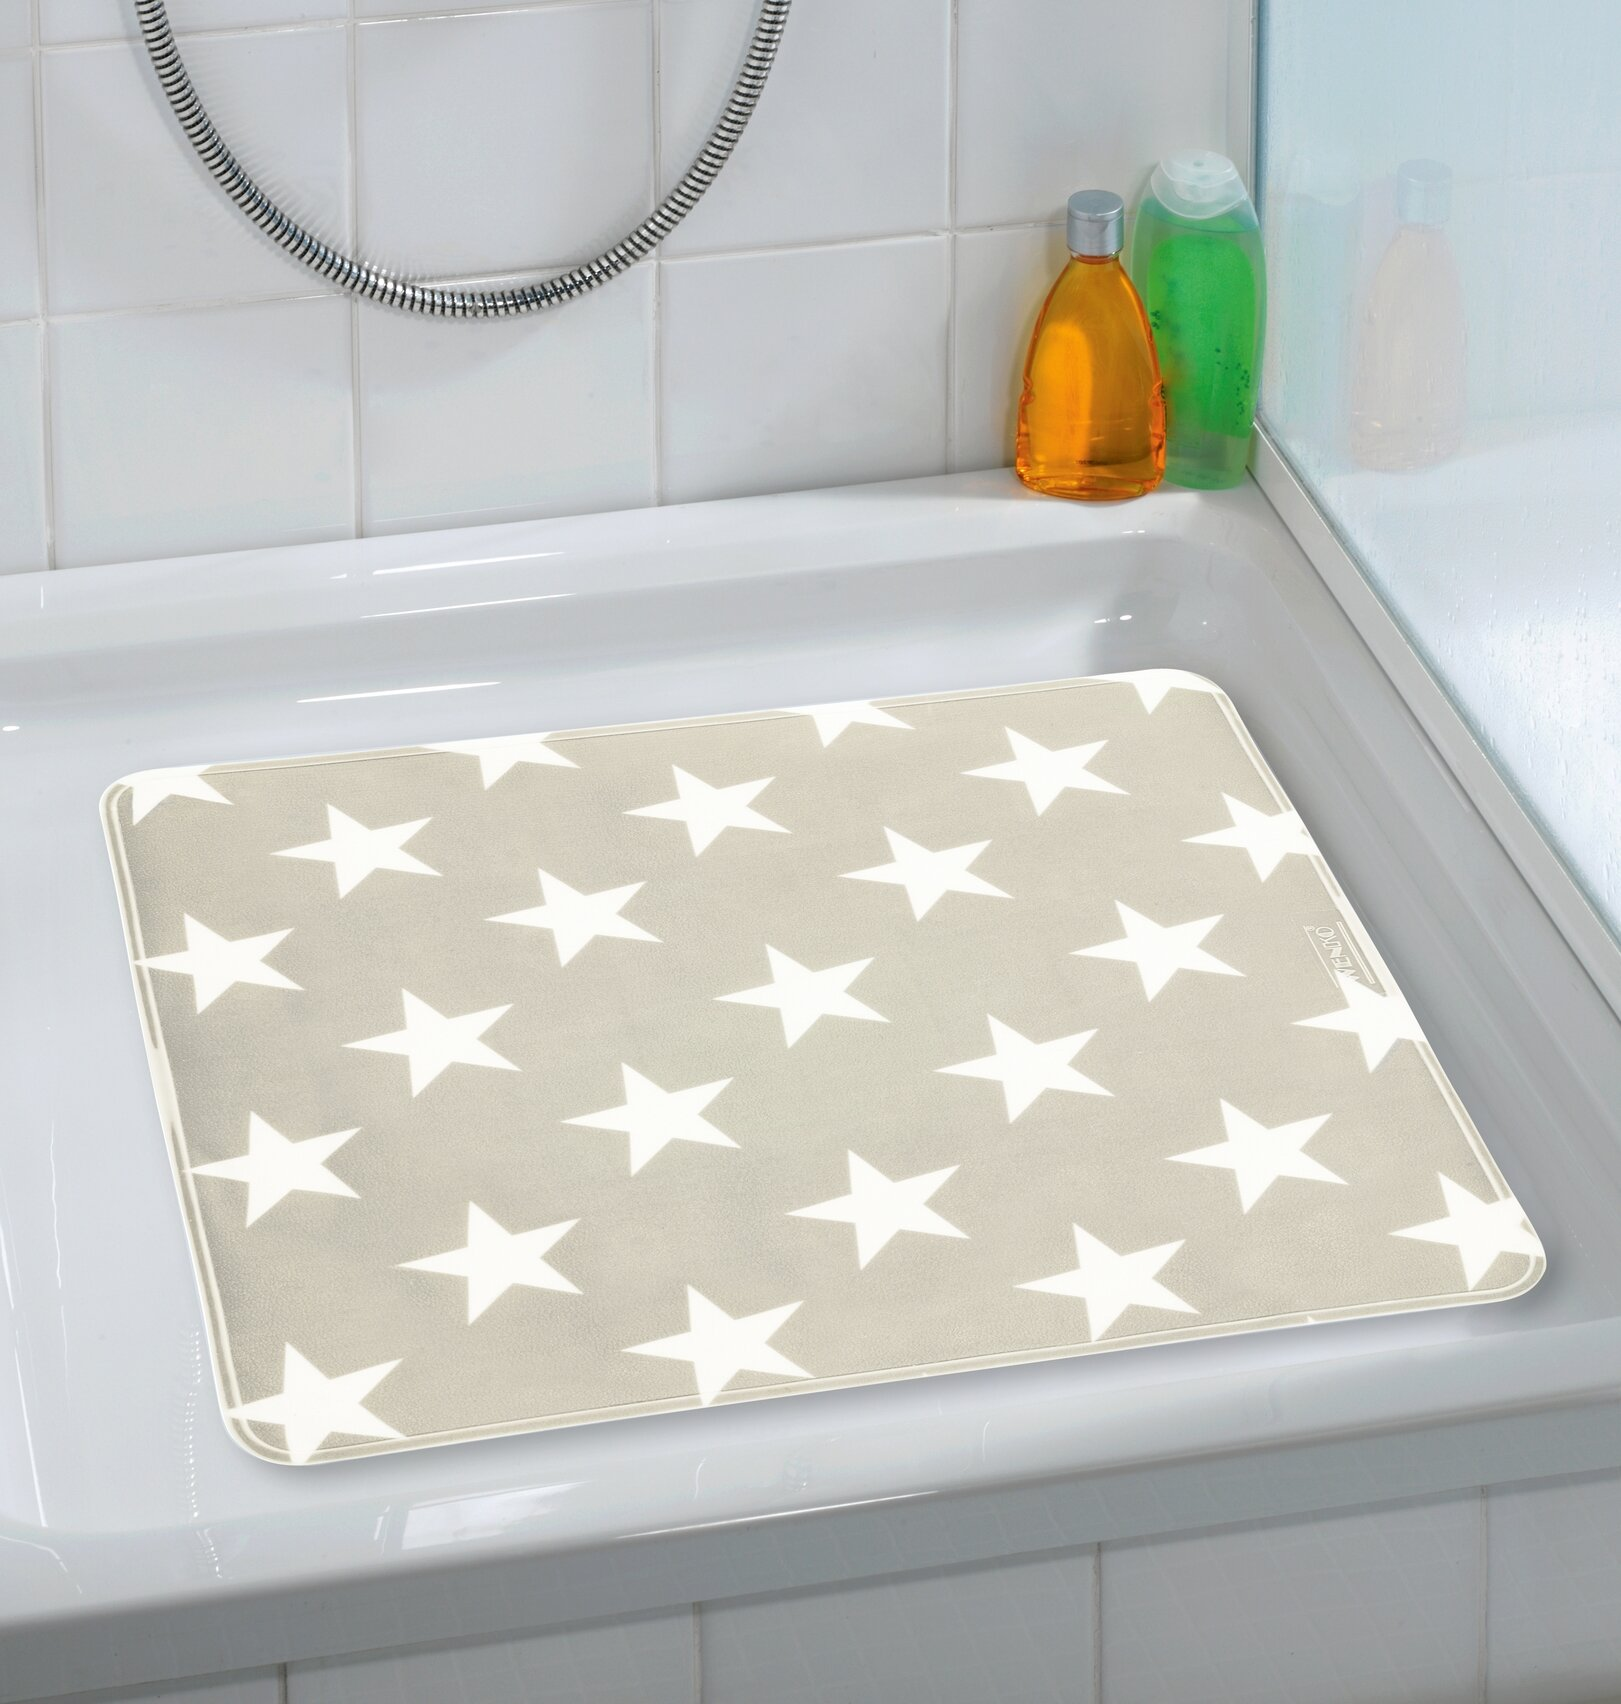 Commercial Laundry Safe Non Slip Backing Tub Shower Mats You Ll Love In 2021 Wayfair